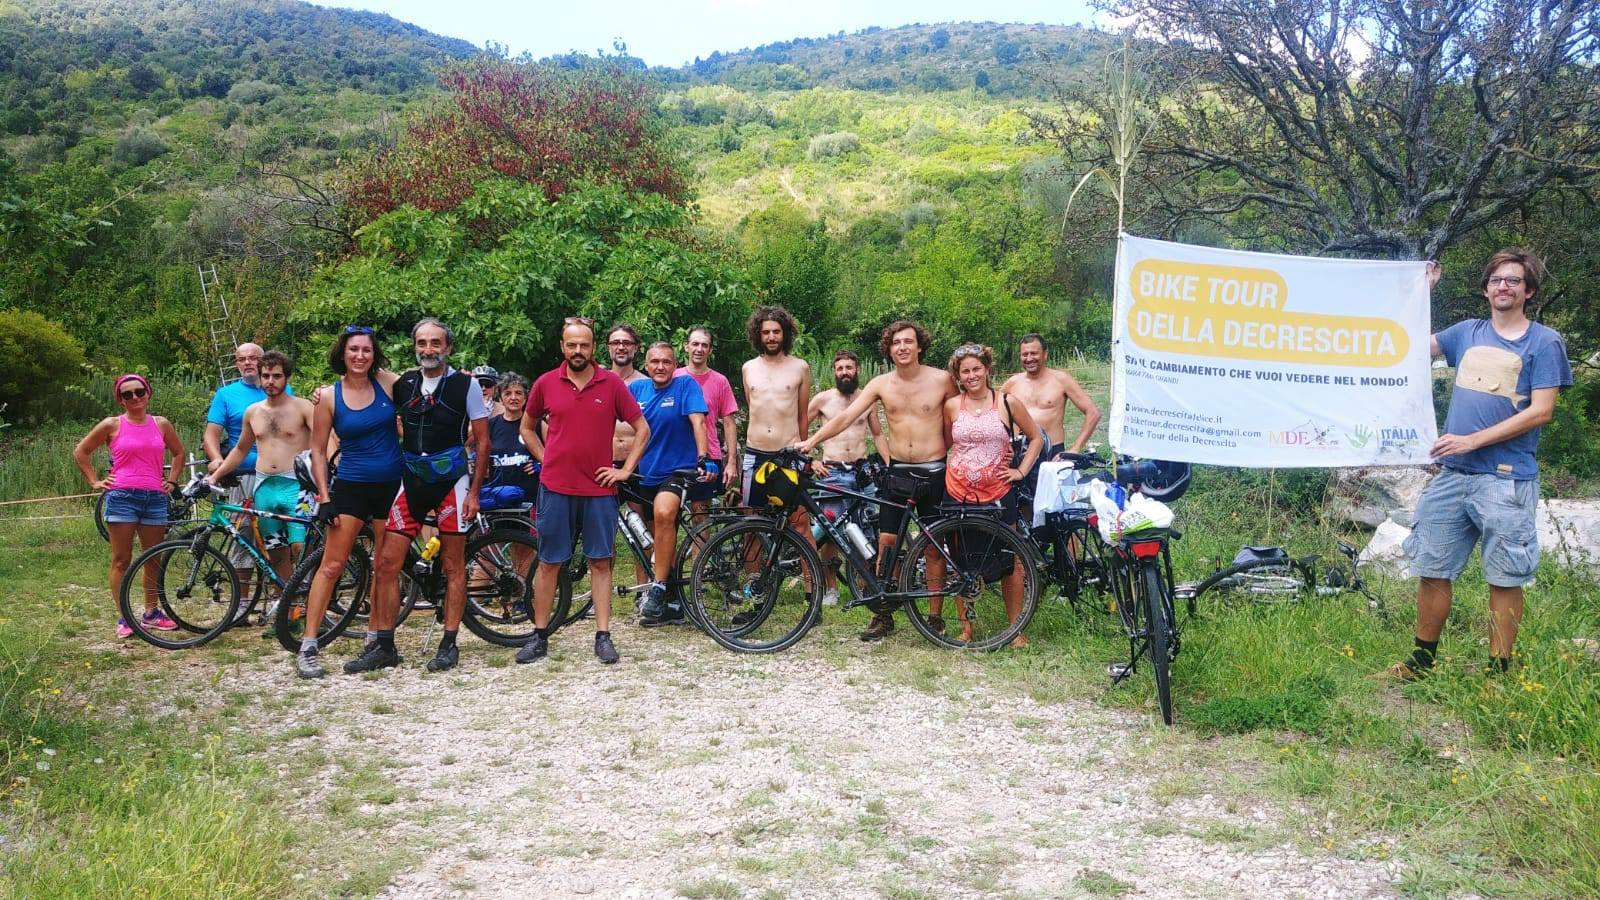 decrescita bike tour 2019